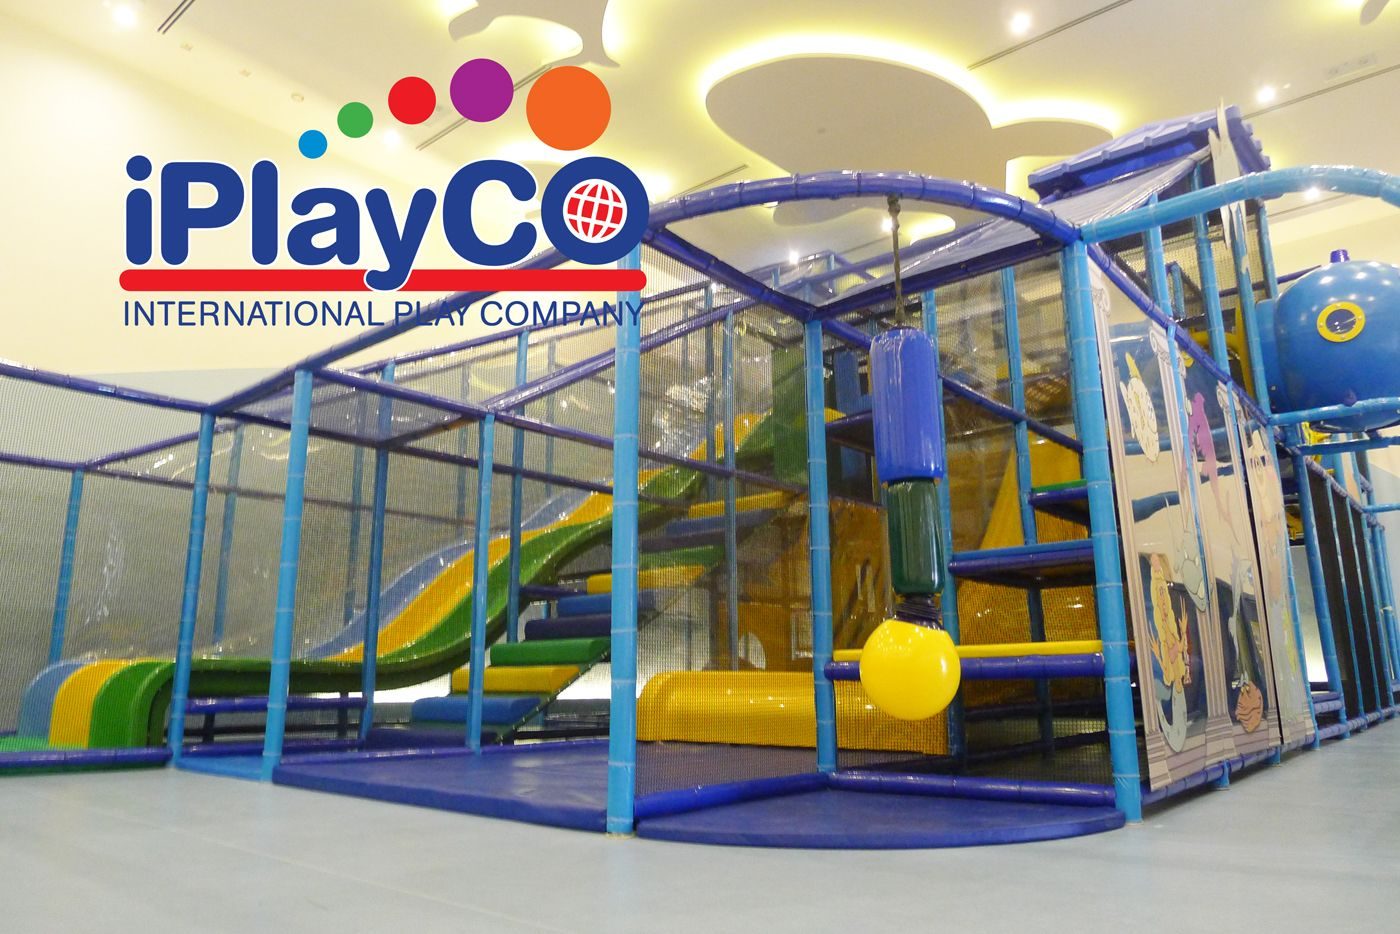 Indoor Commercial Play Structures for children of all ages